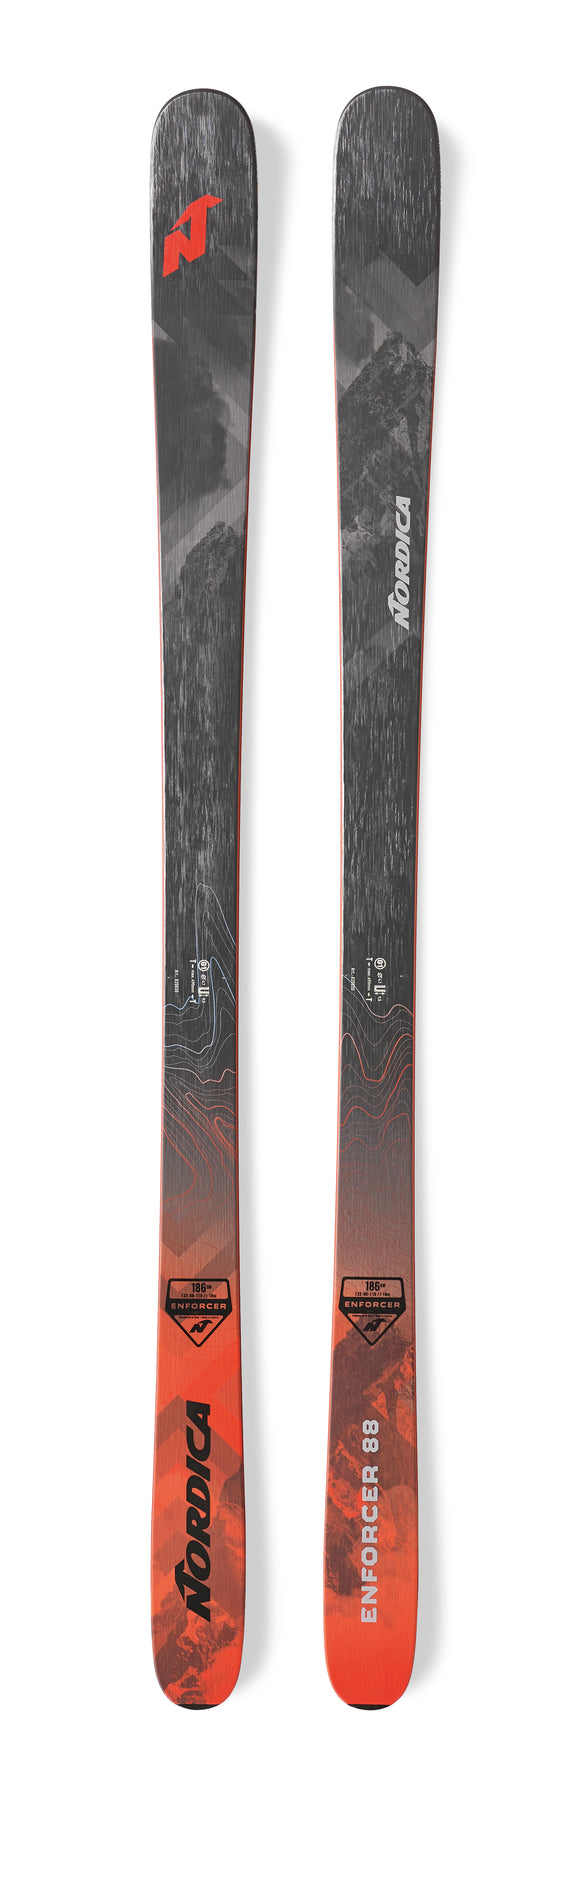 NORDICA 2020 Nordica Enforcer 88 snow skis - ProSkiGuy